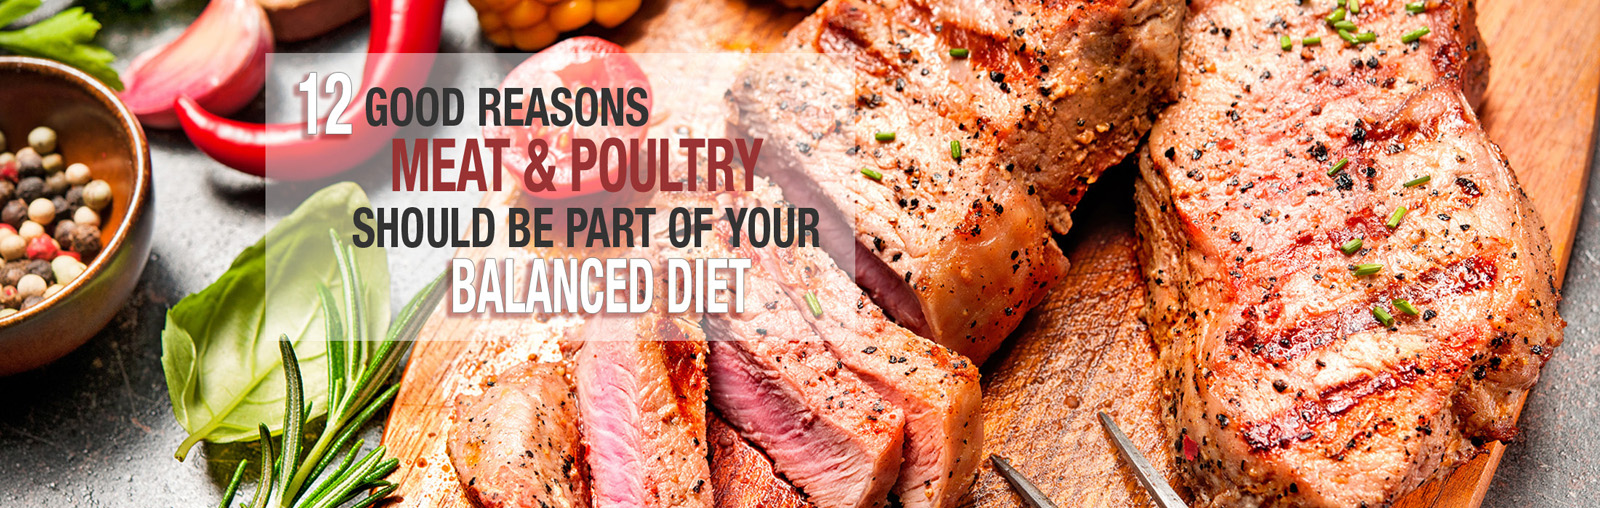 12 Good Reasons Meat and Poultry Should be Part of Your Balanced diet.